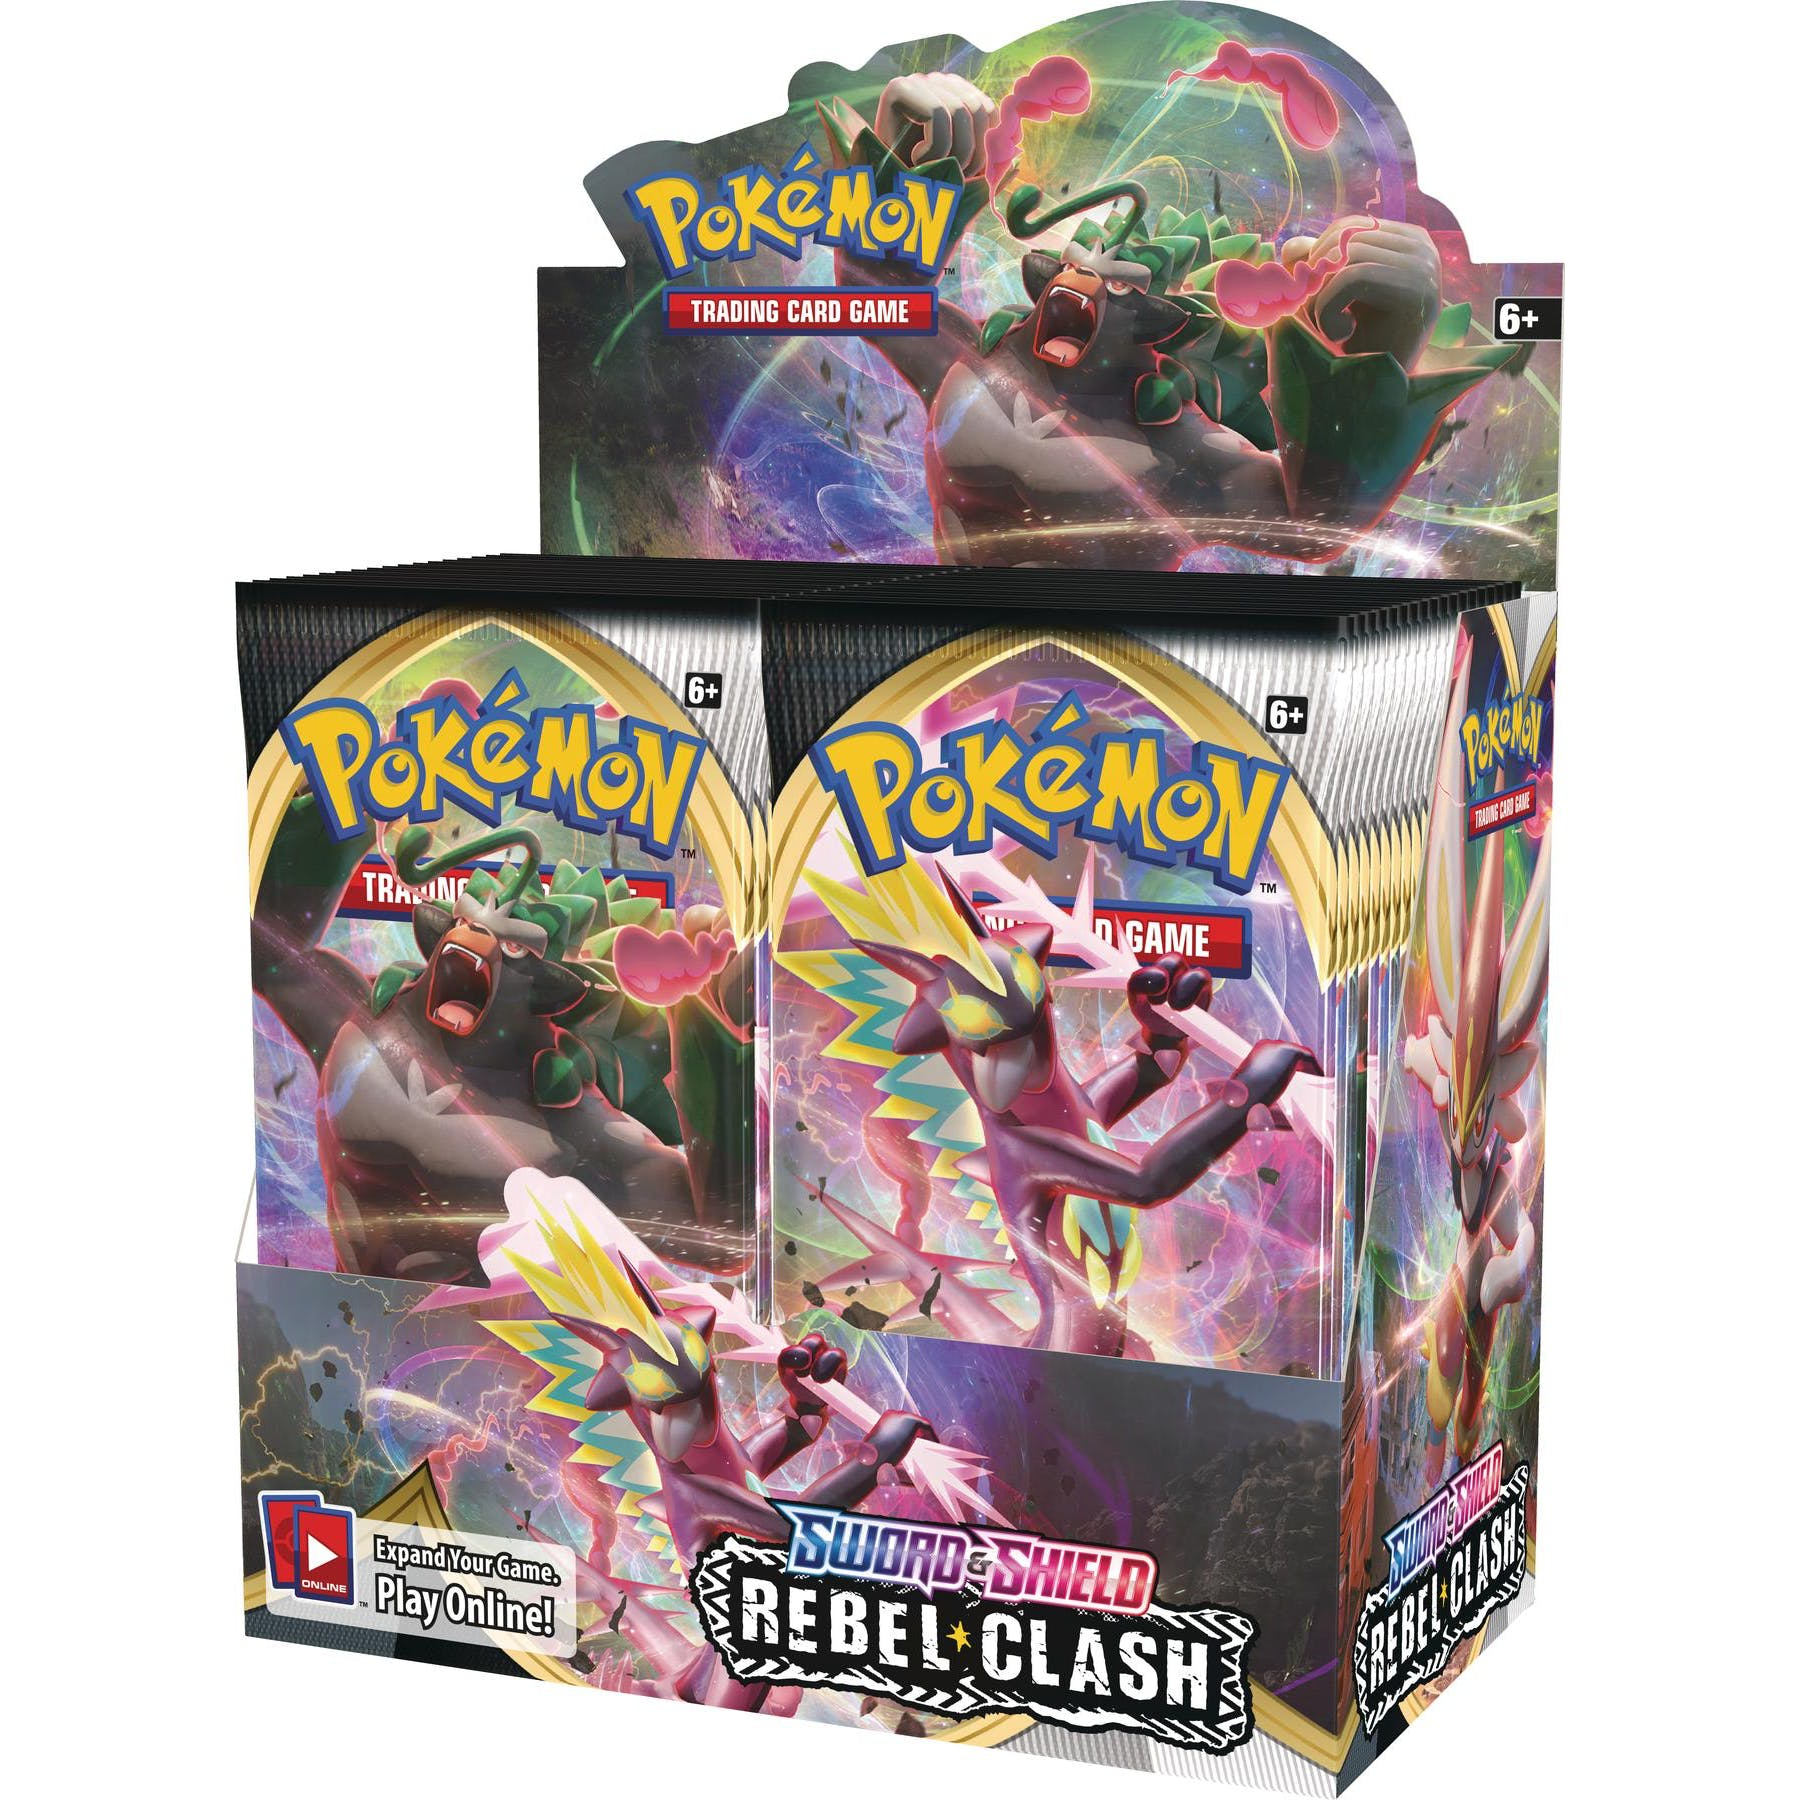 Pokemon SS2 Rebel Clash Booster Box | Mothership Books and Games TX